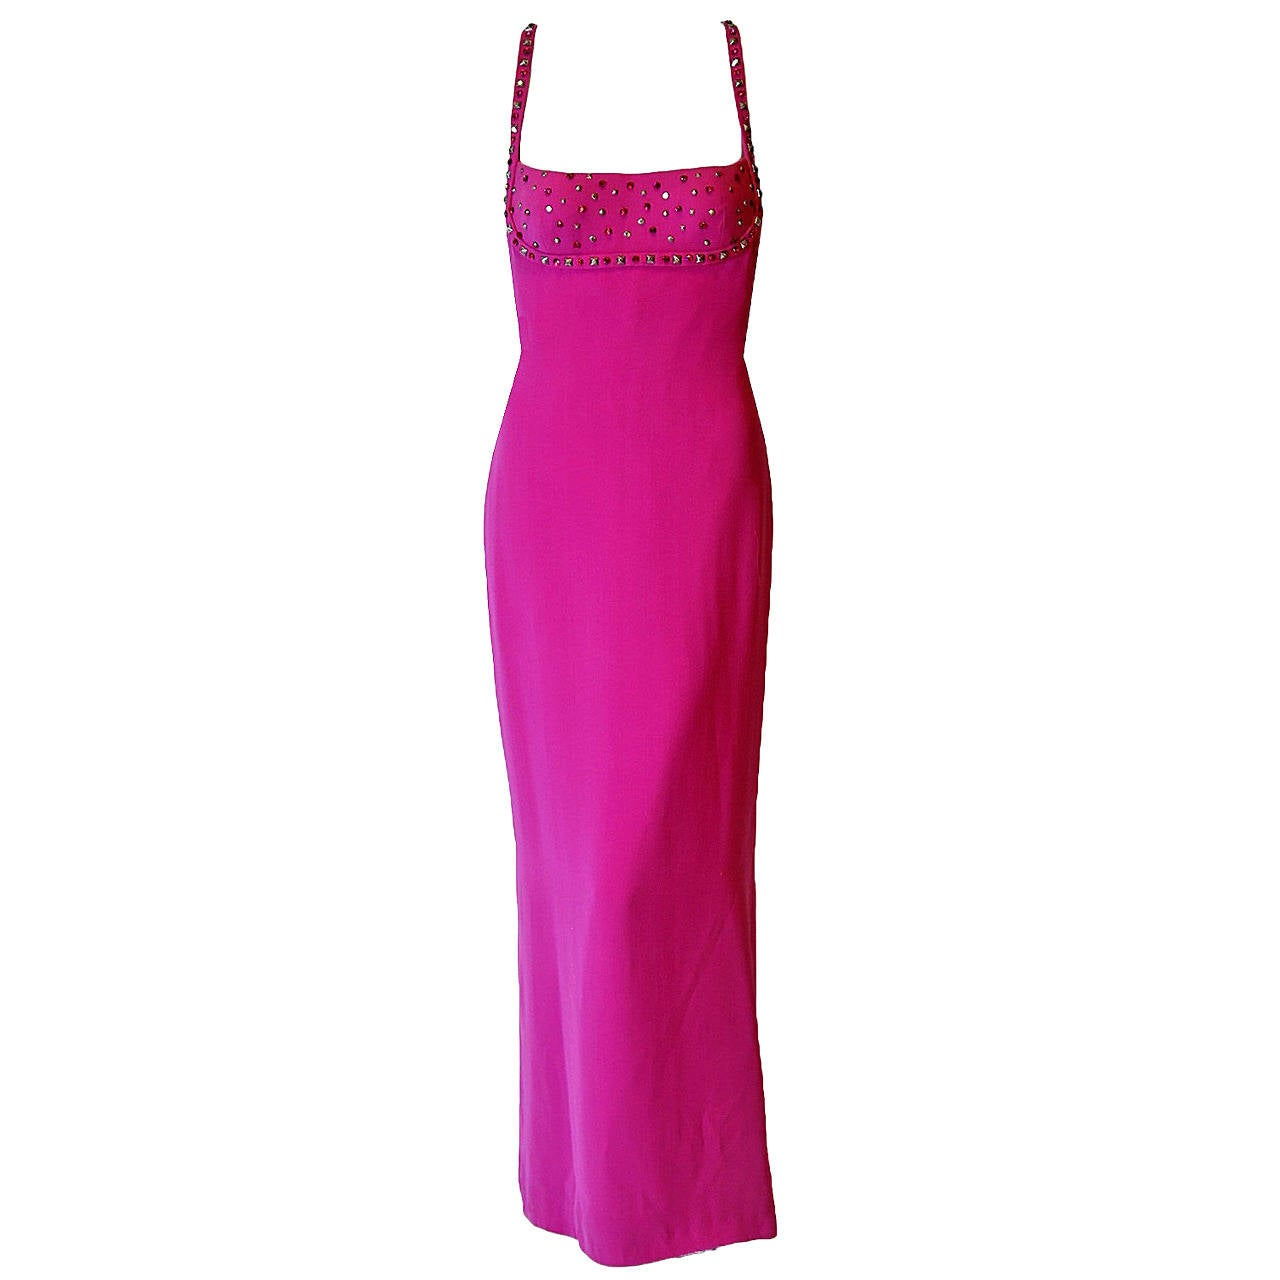 1995 Gianni Versace Couture Fuchsia Silk Studded Shelf-Bust Hourglass Gown For Sale